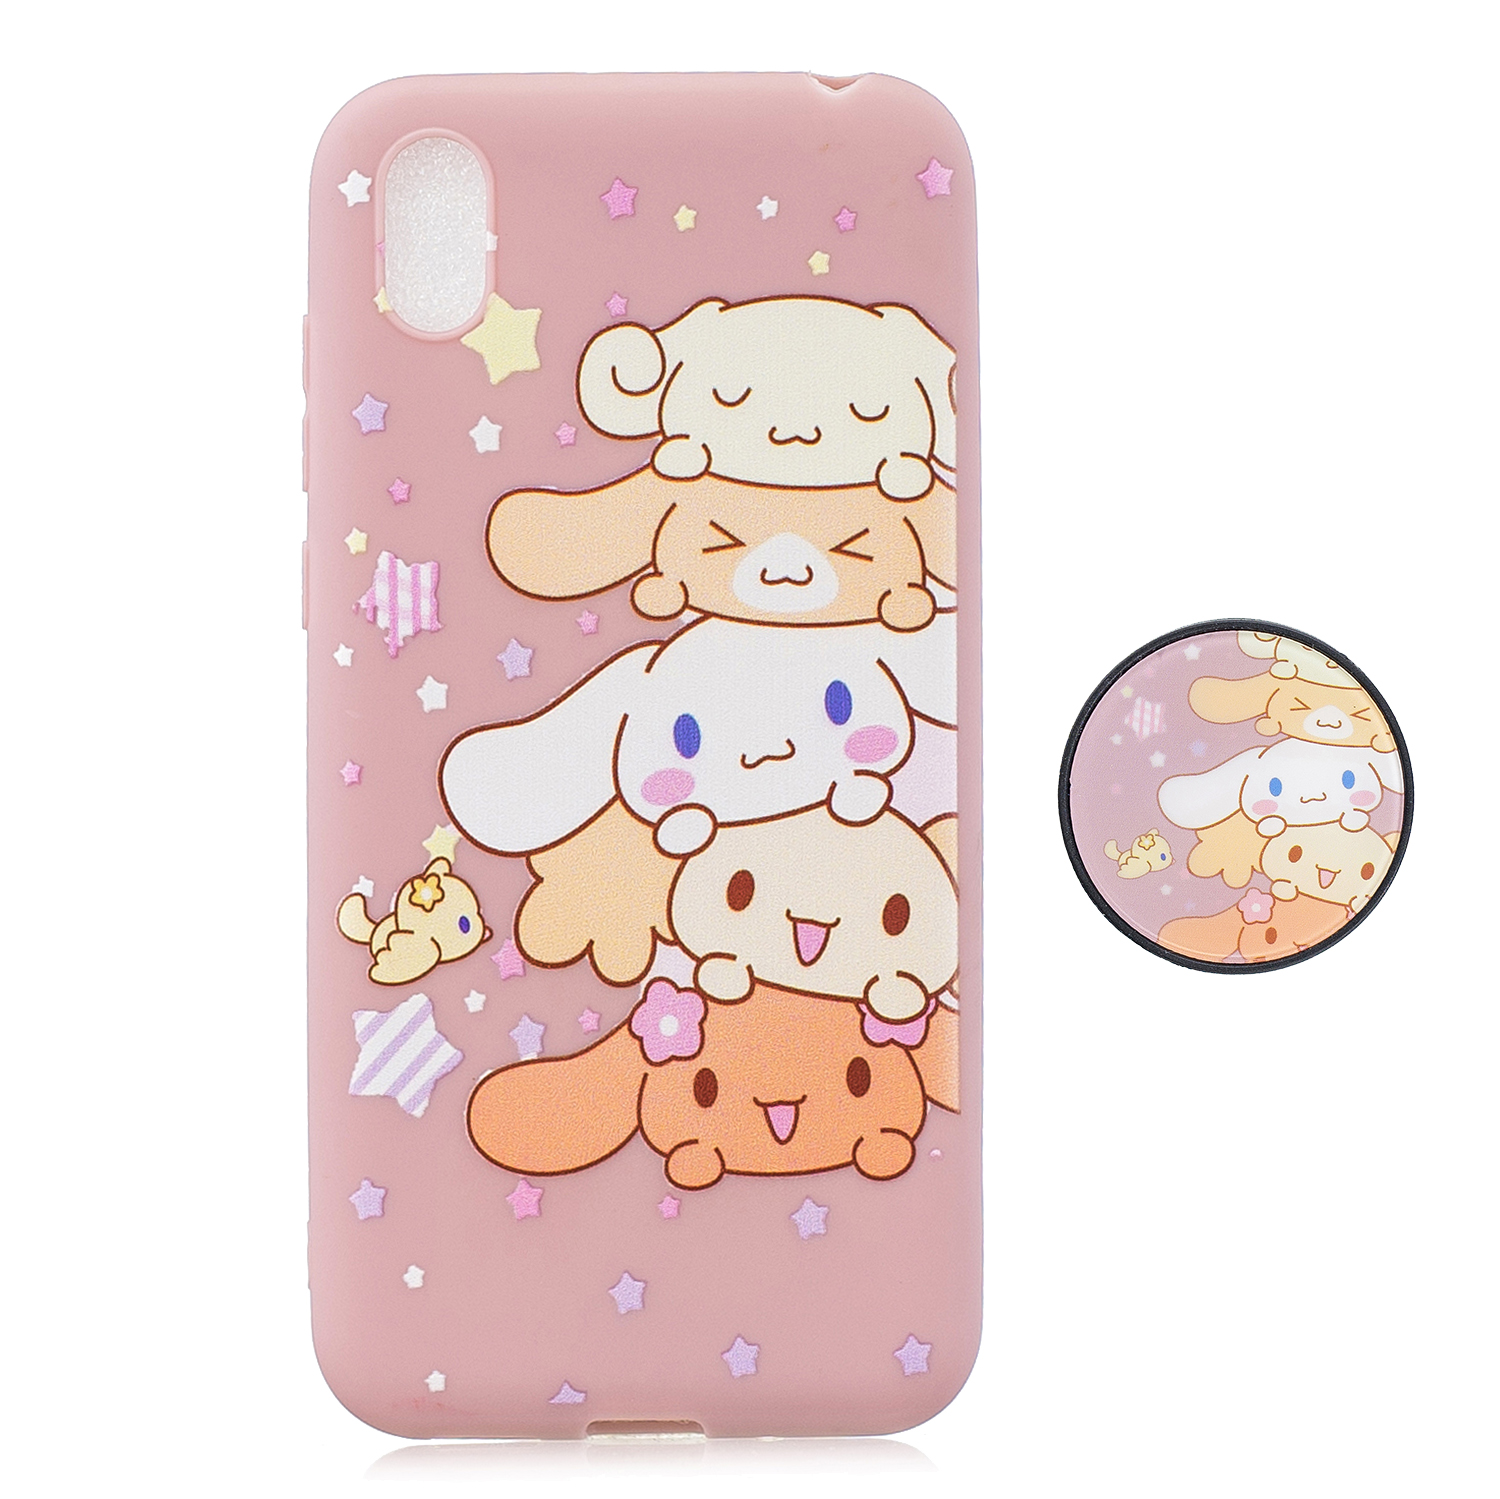 For HUAWEI Y5 2019  Lightweight Soft TPU Phone Case Pure Color Phone Cover Cute Cartoon Phone Case with Matching Pattern Adjustable Bracket 1